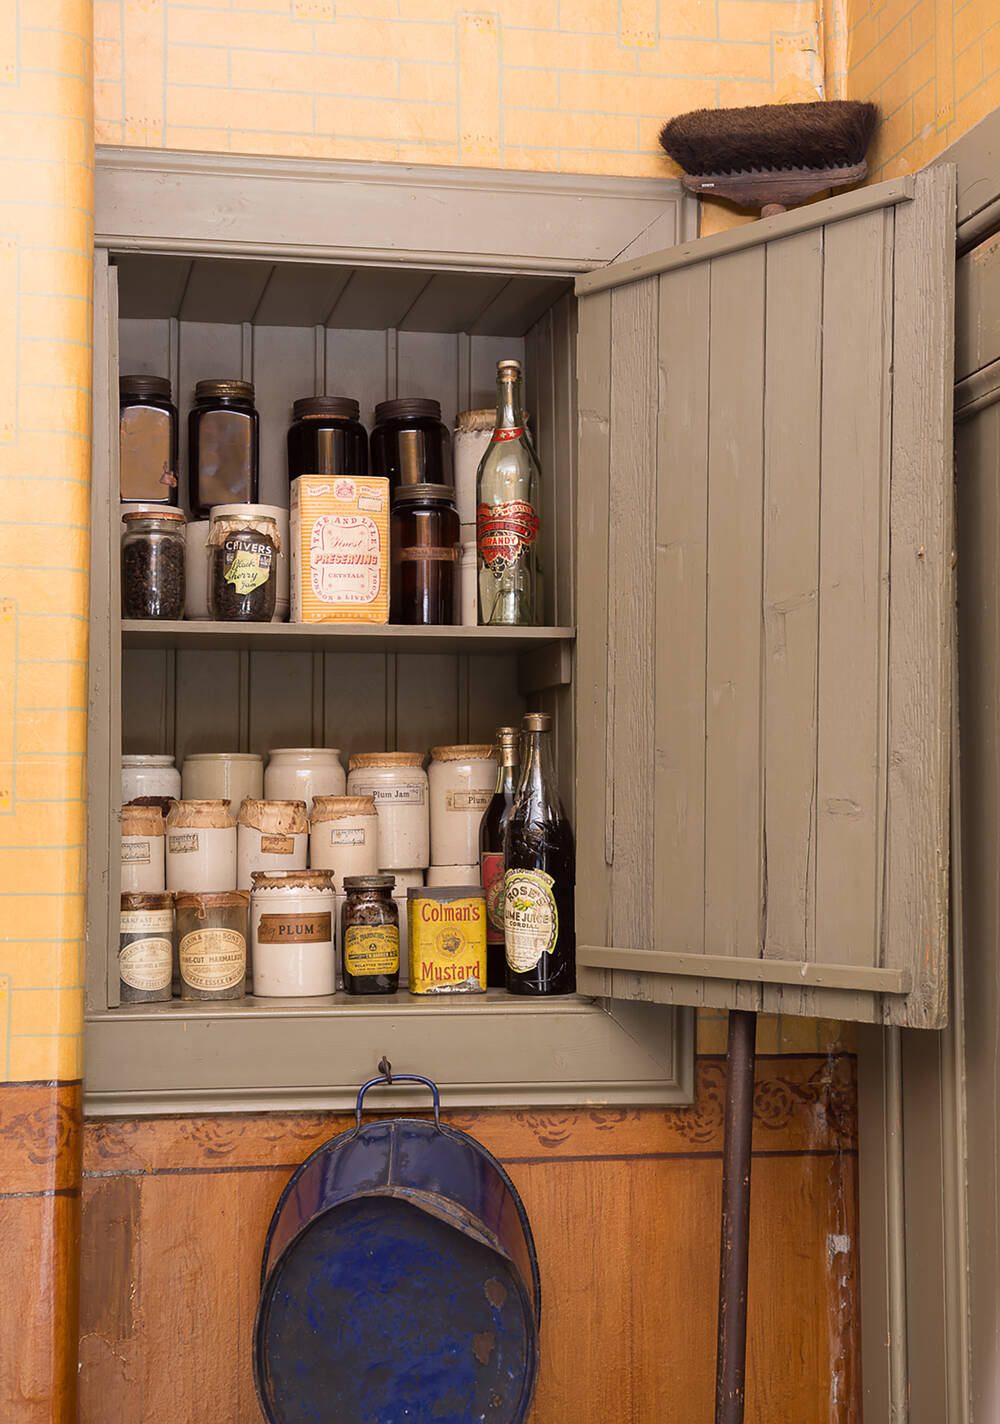 Jam cupboard at Tenement House